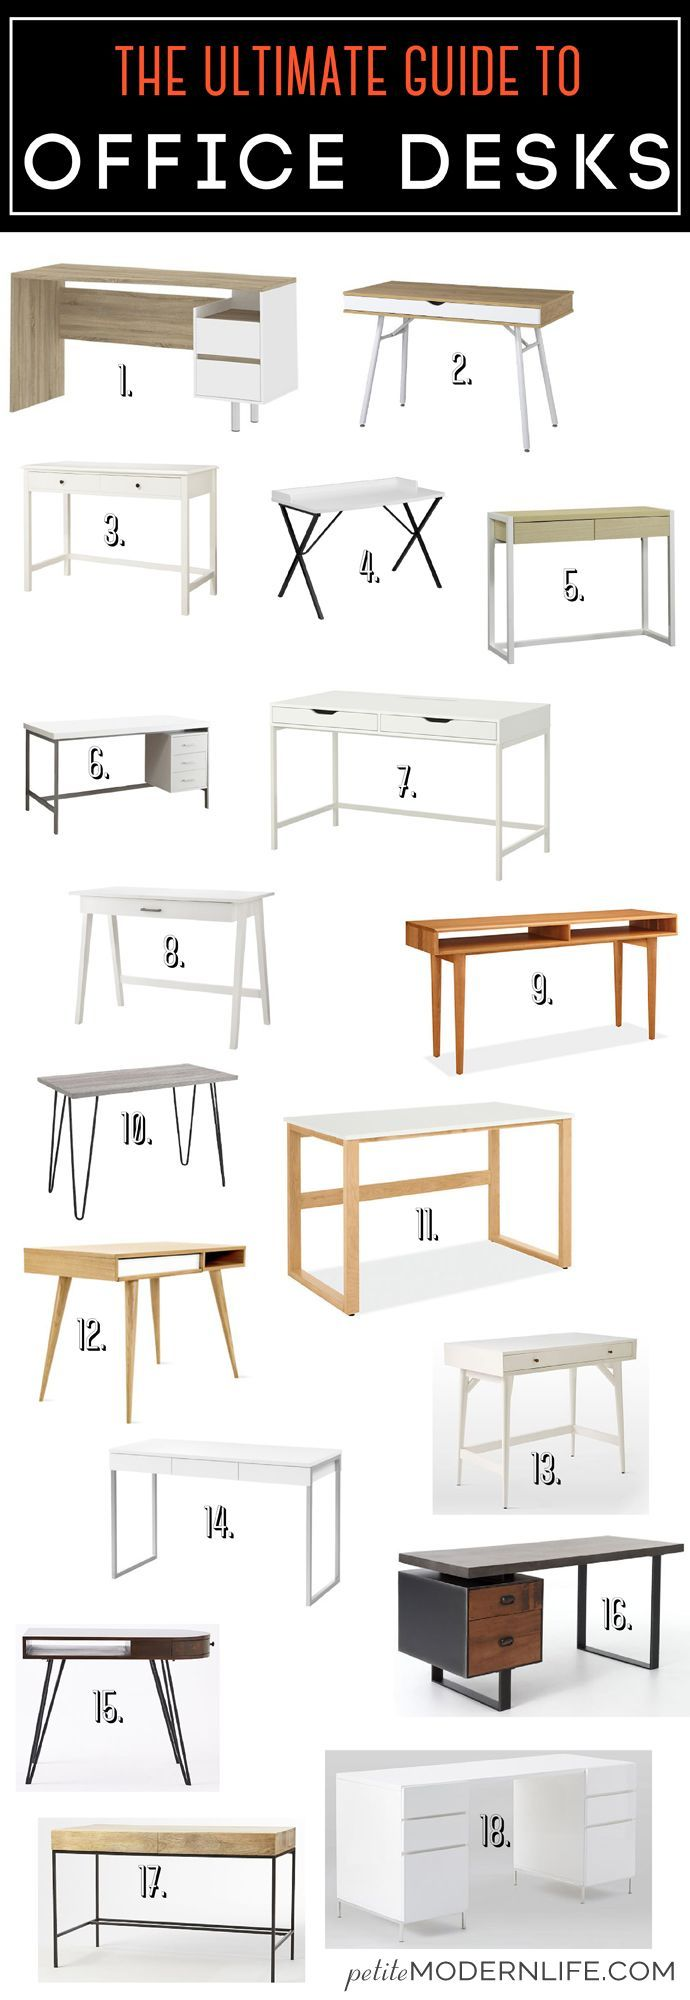 modern home office furniture sydney 1000 ideas about modern home office furniture on pinterest contemporary bookcase bedroomfoxy office furniture chairs cape town